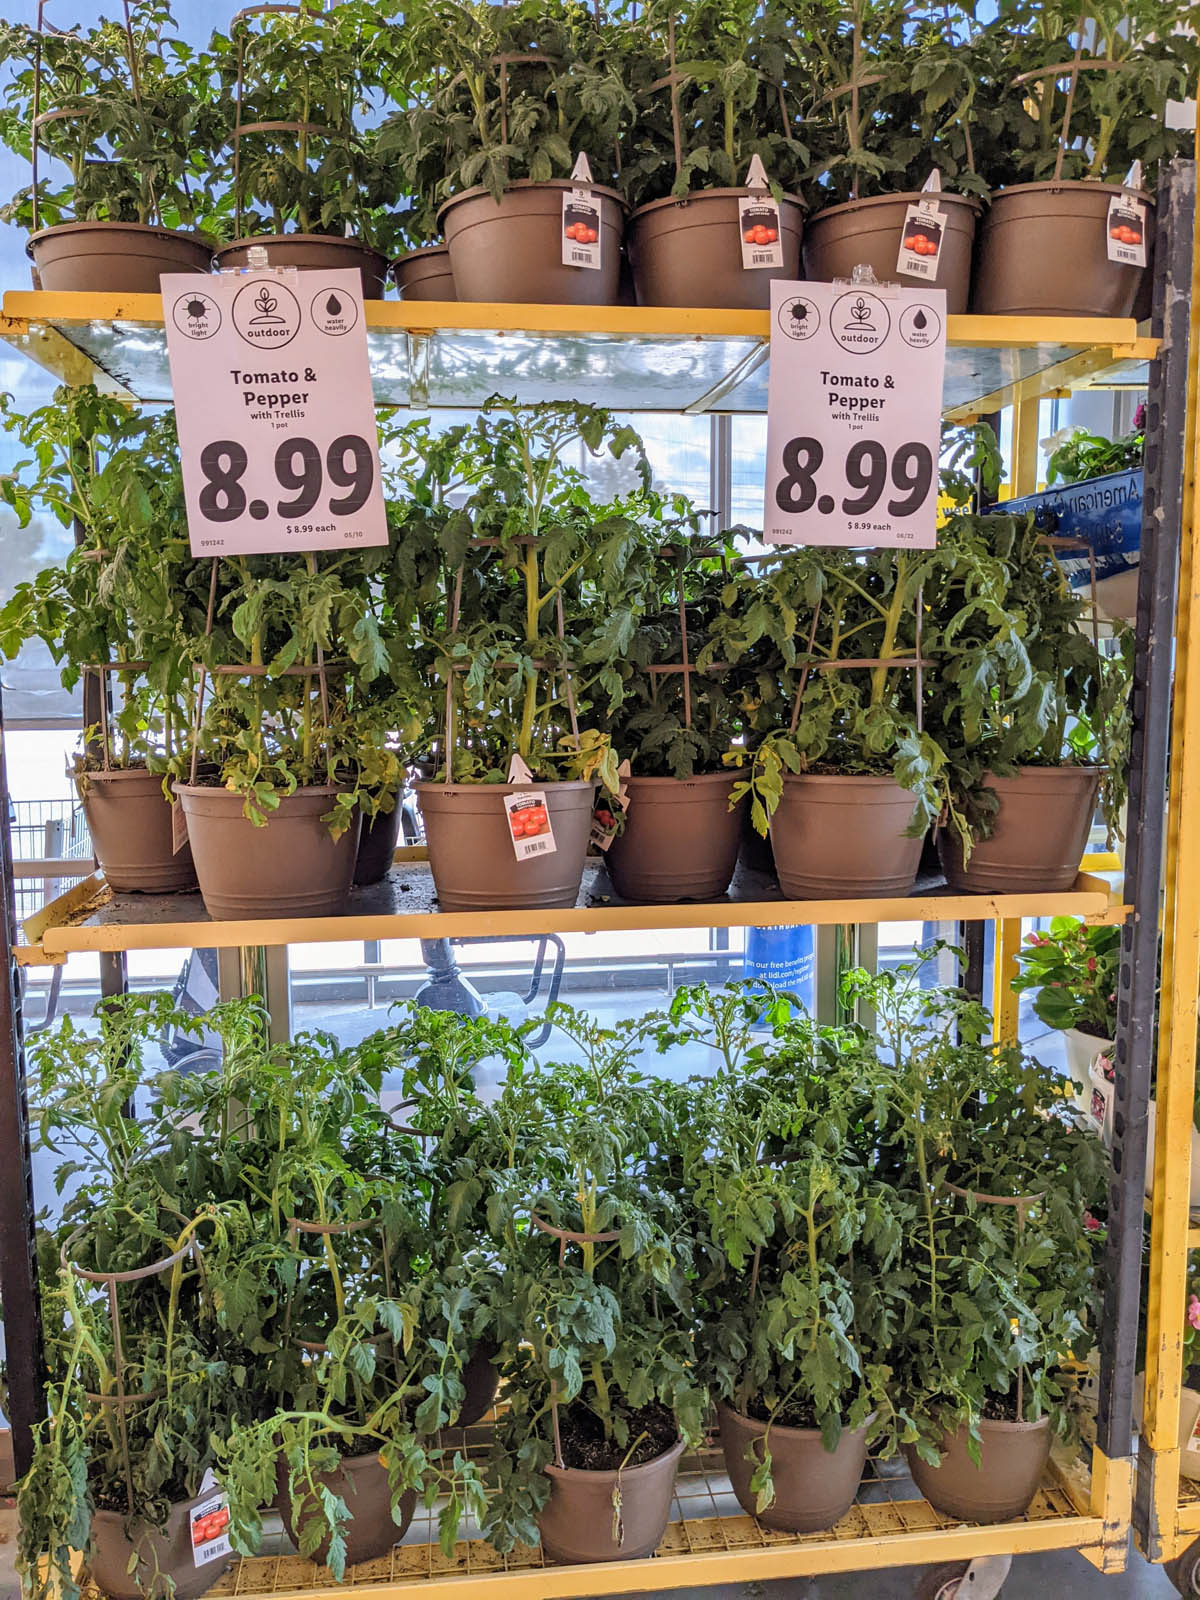 Tomato and Pepper Plants - Lidl Vegetable Plants